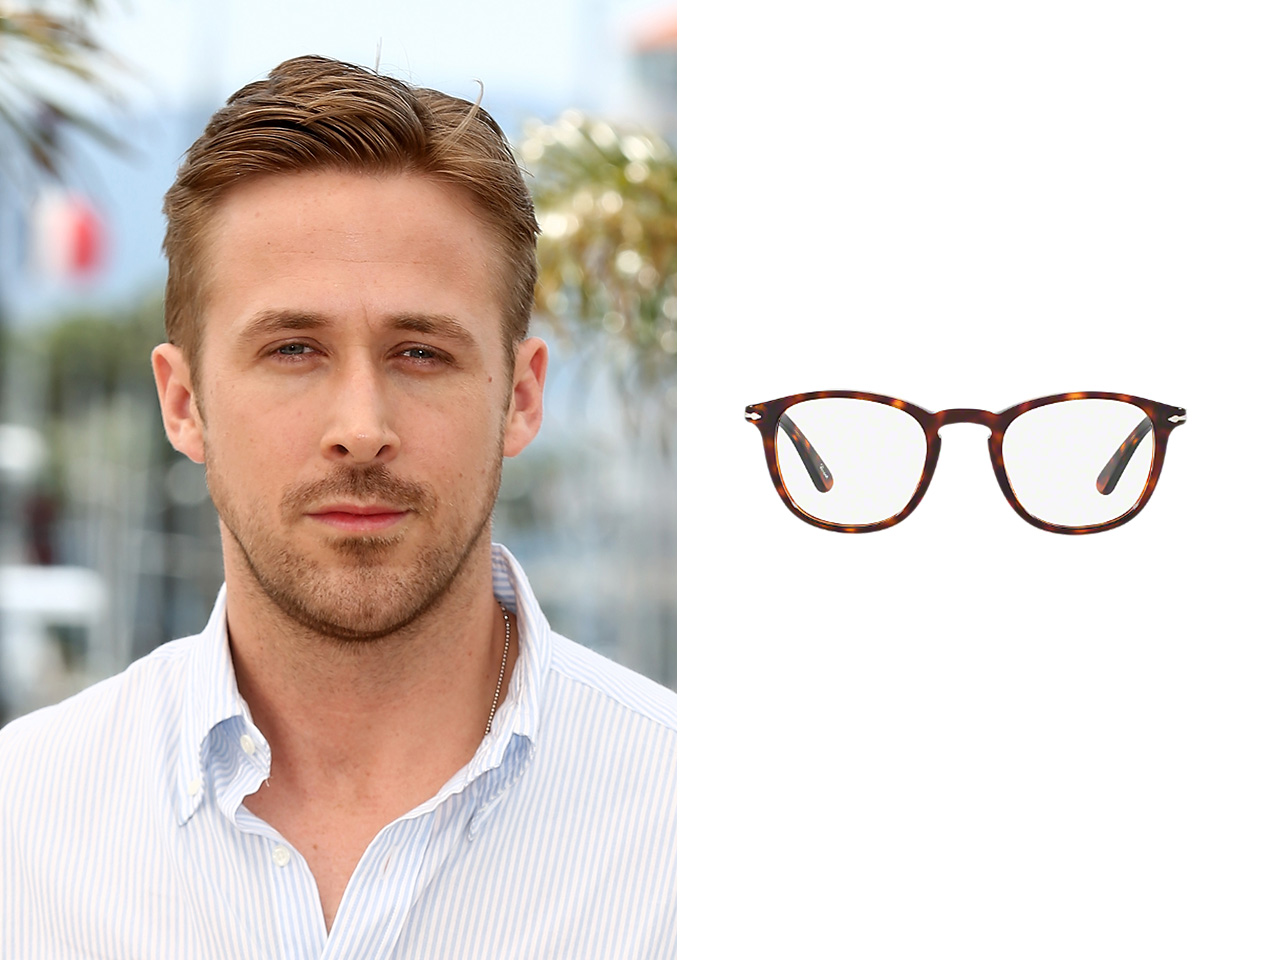 f866c62278 How to choose the best glasses according to your face shape